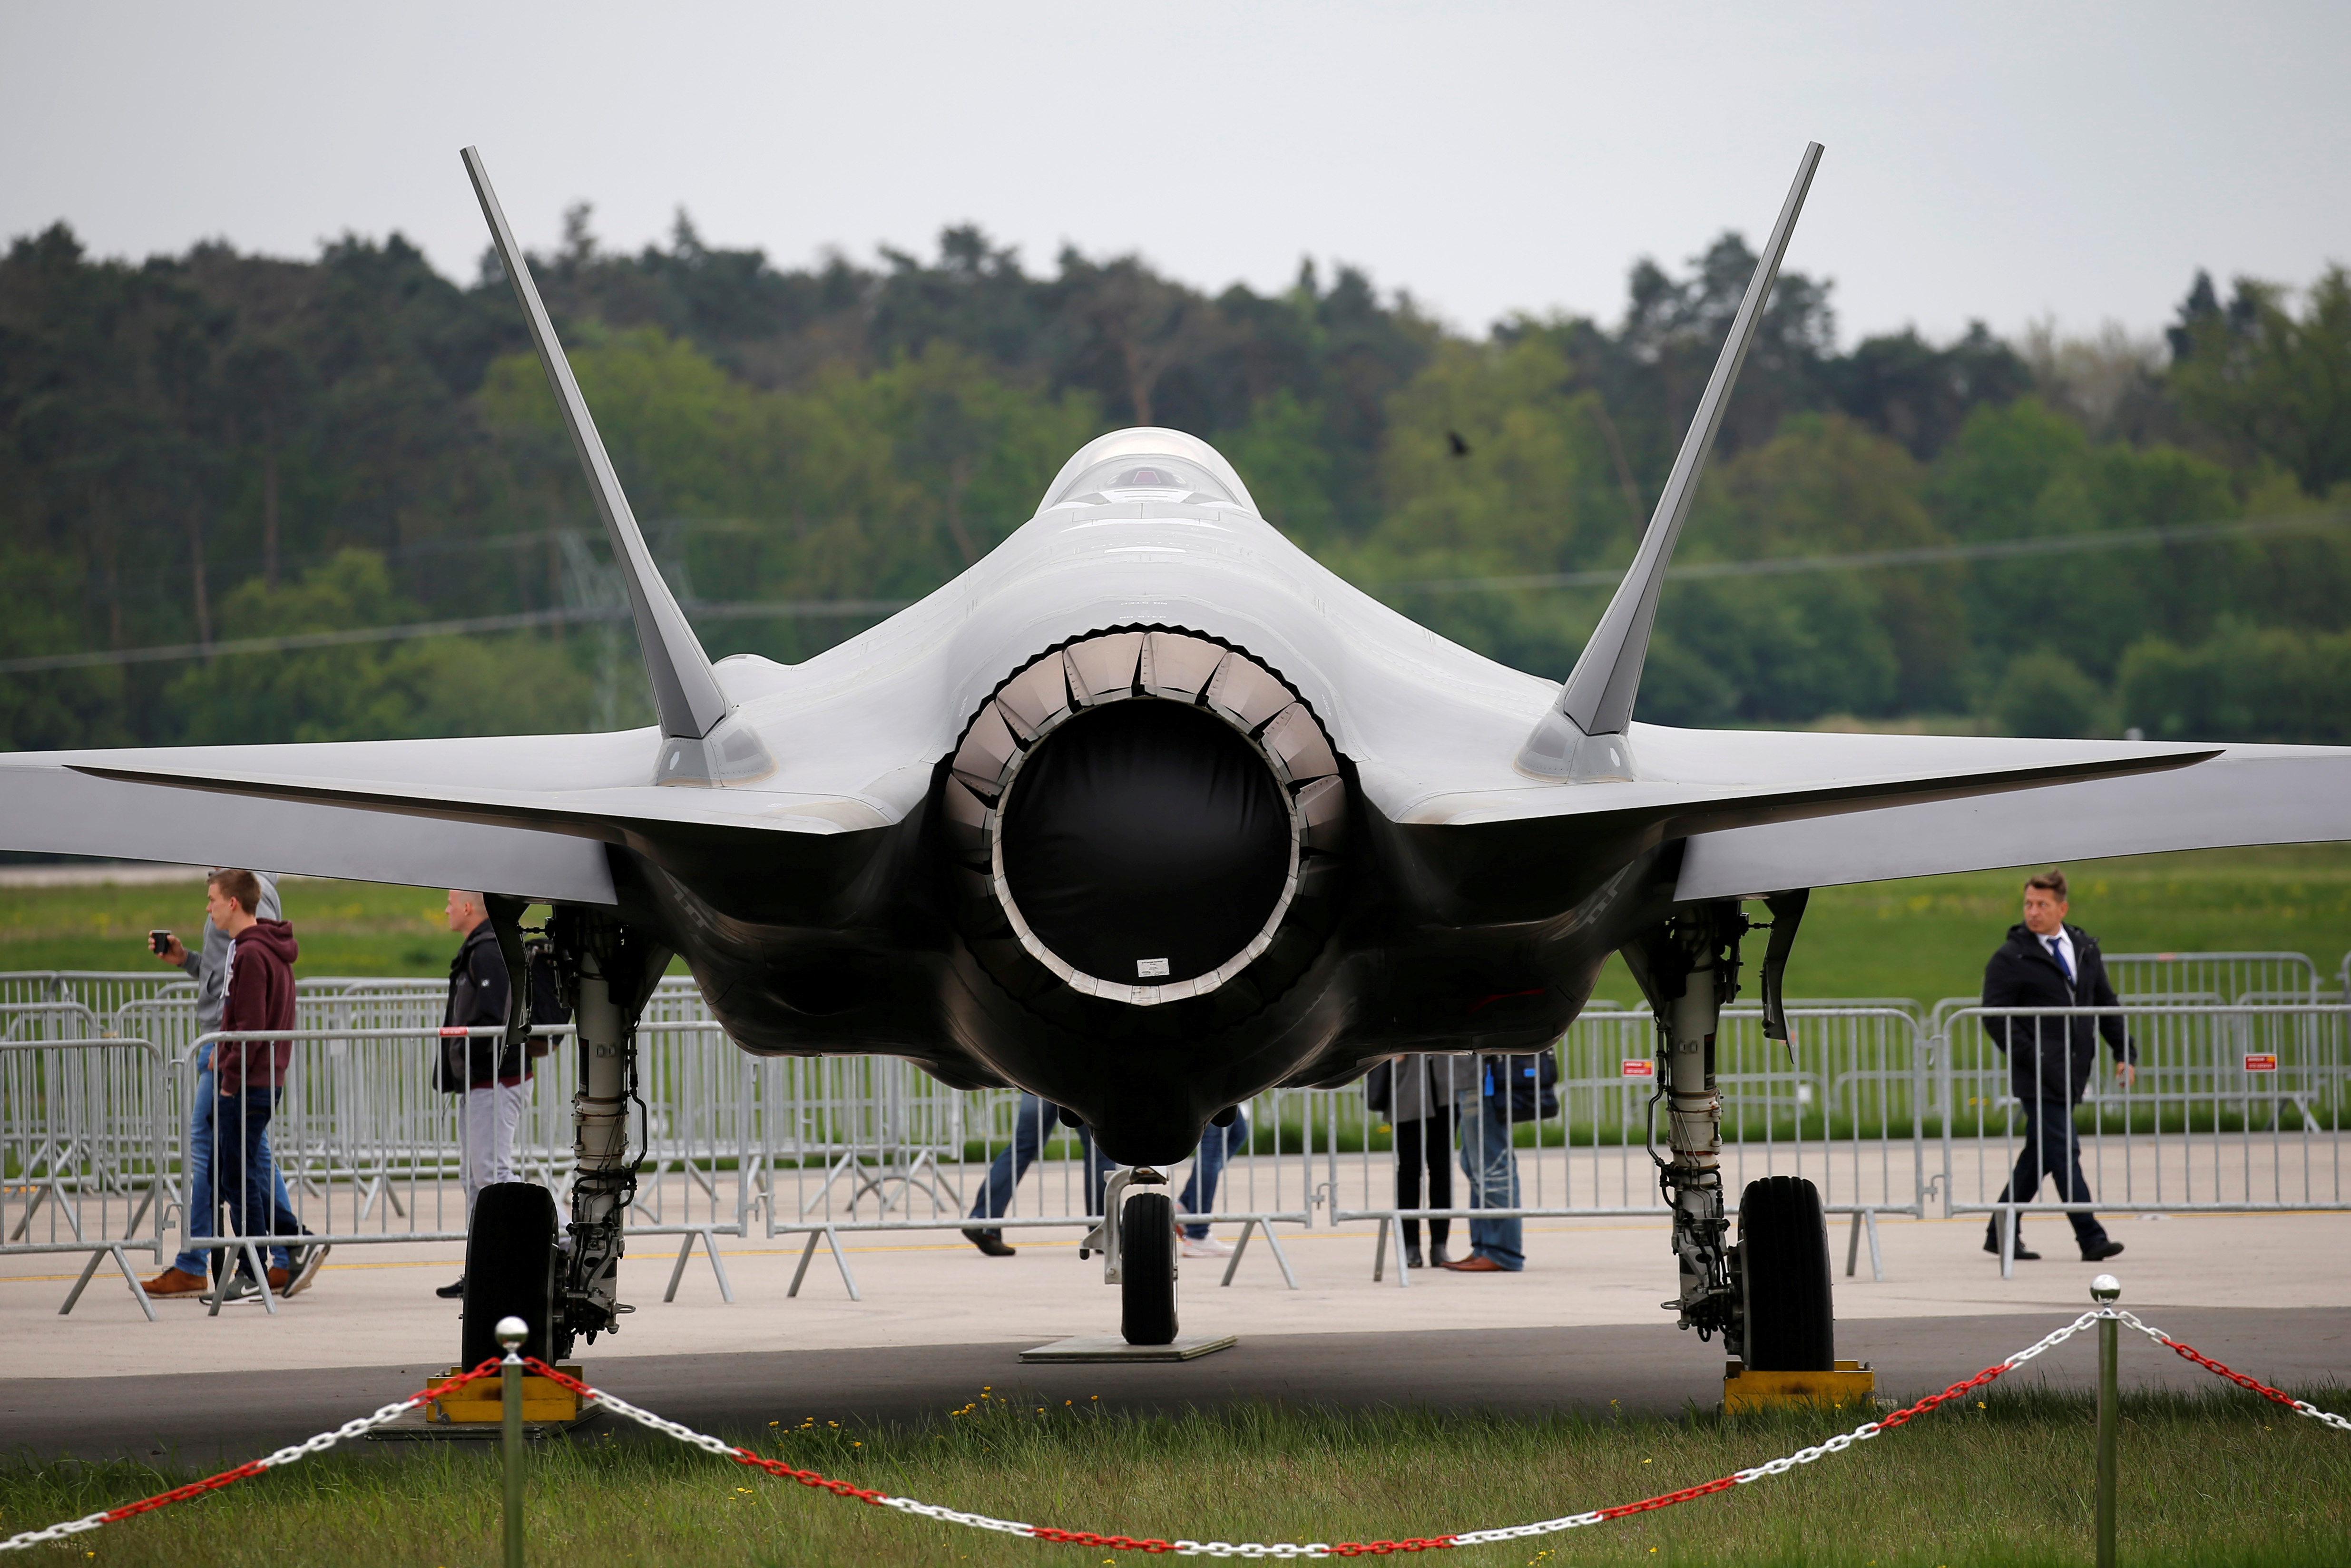 A Lockheed Martin F-35 aircraft is seen at the ILA Air Show in Berlin, Germany, April 25, 2018.  REUTERS/Axel Schmidt